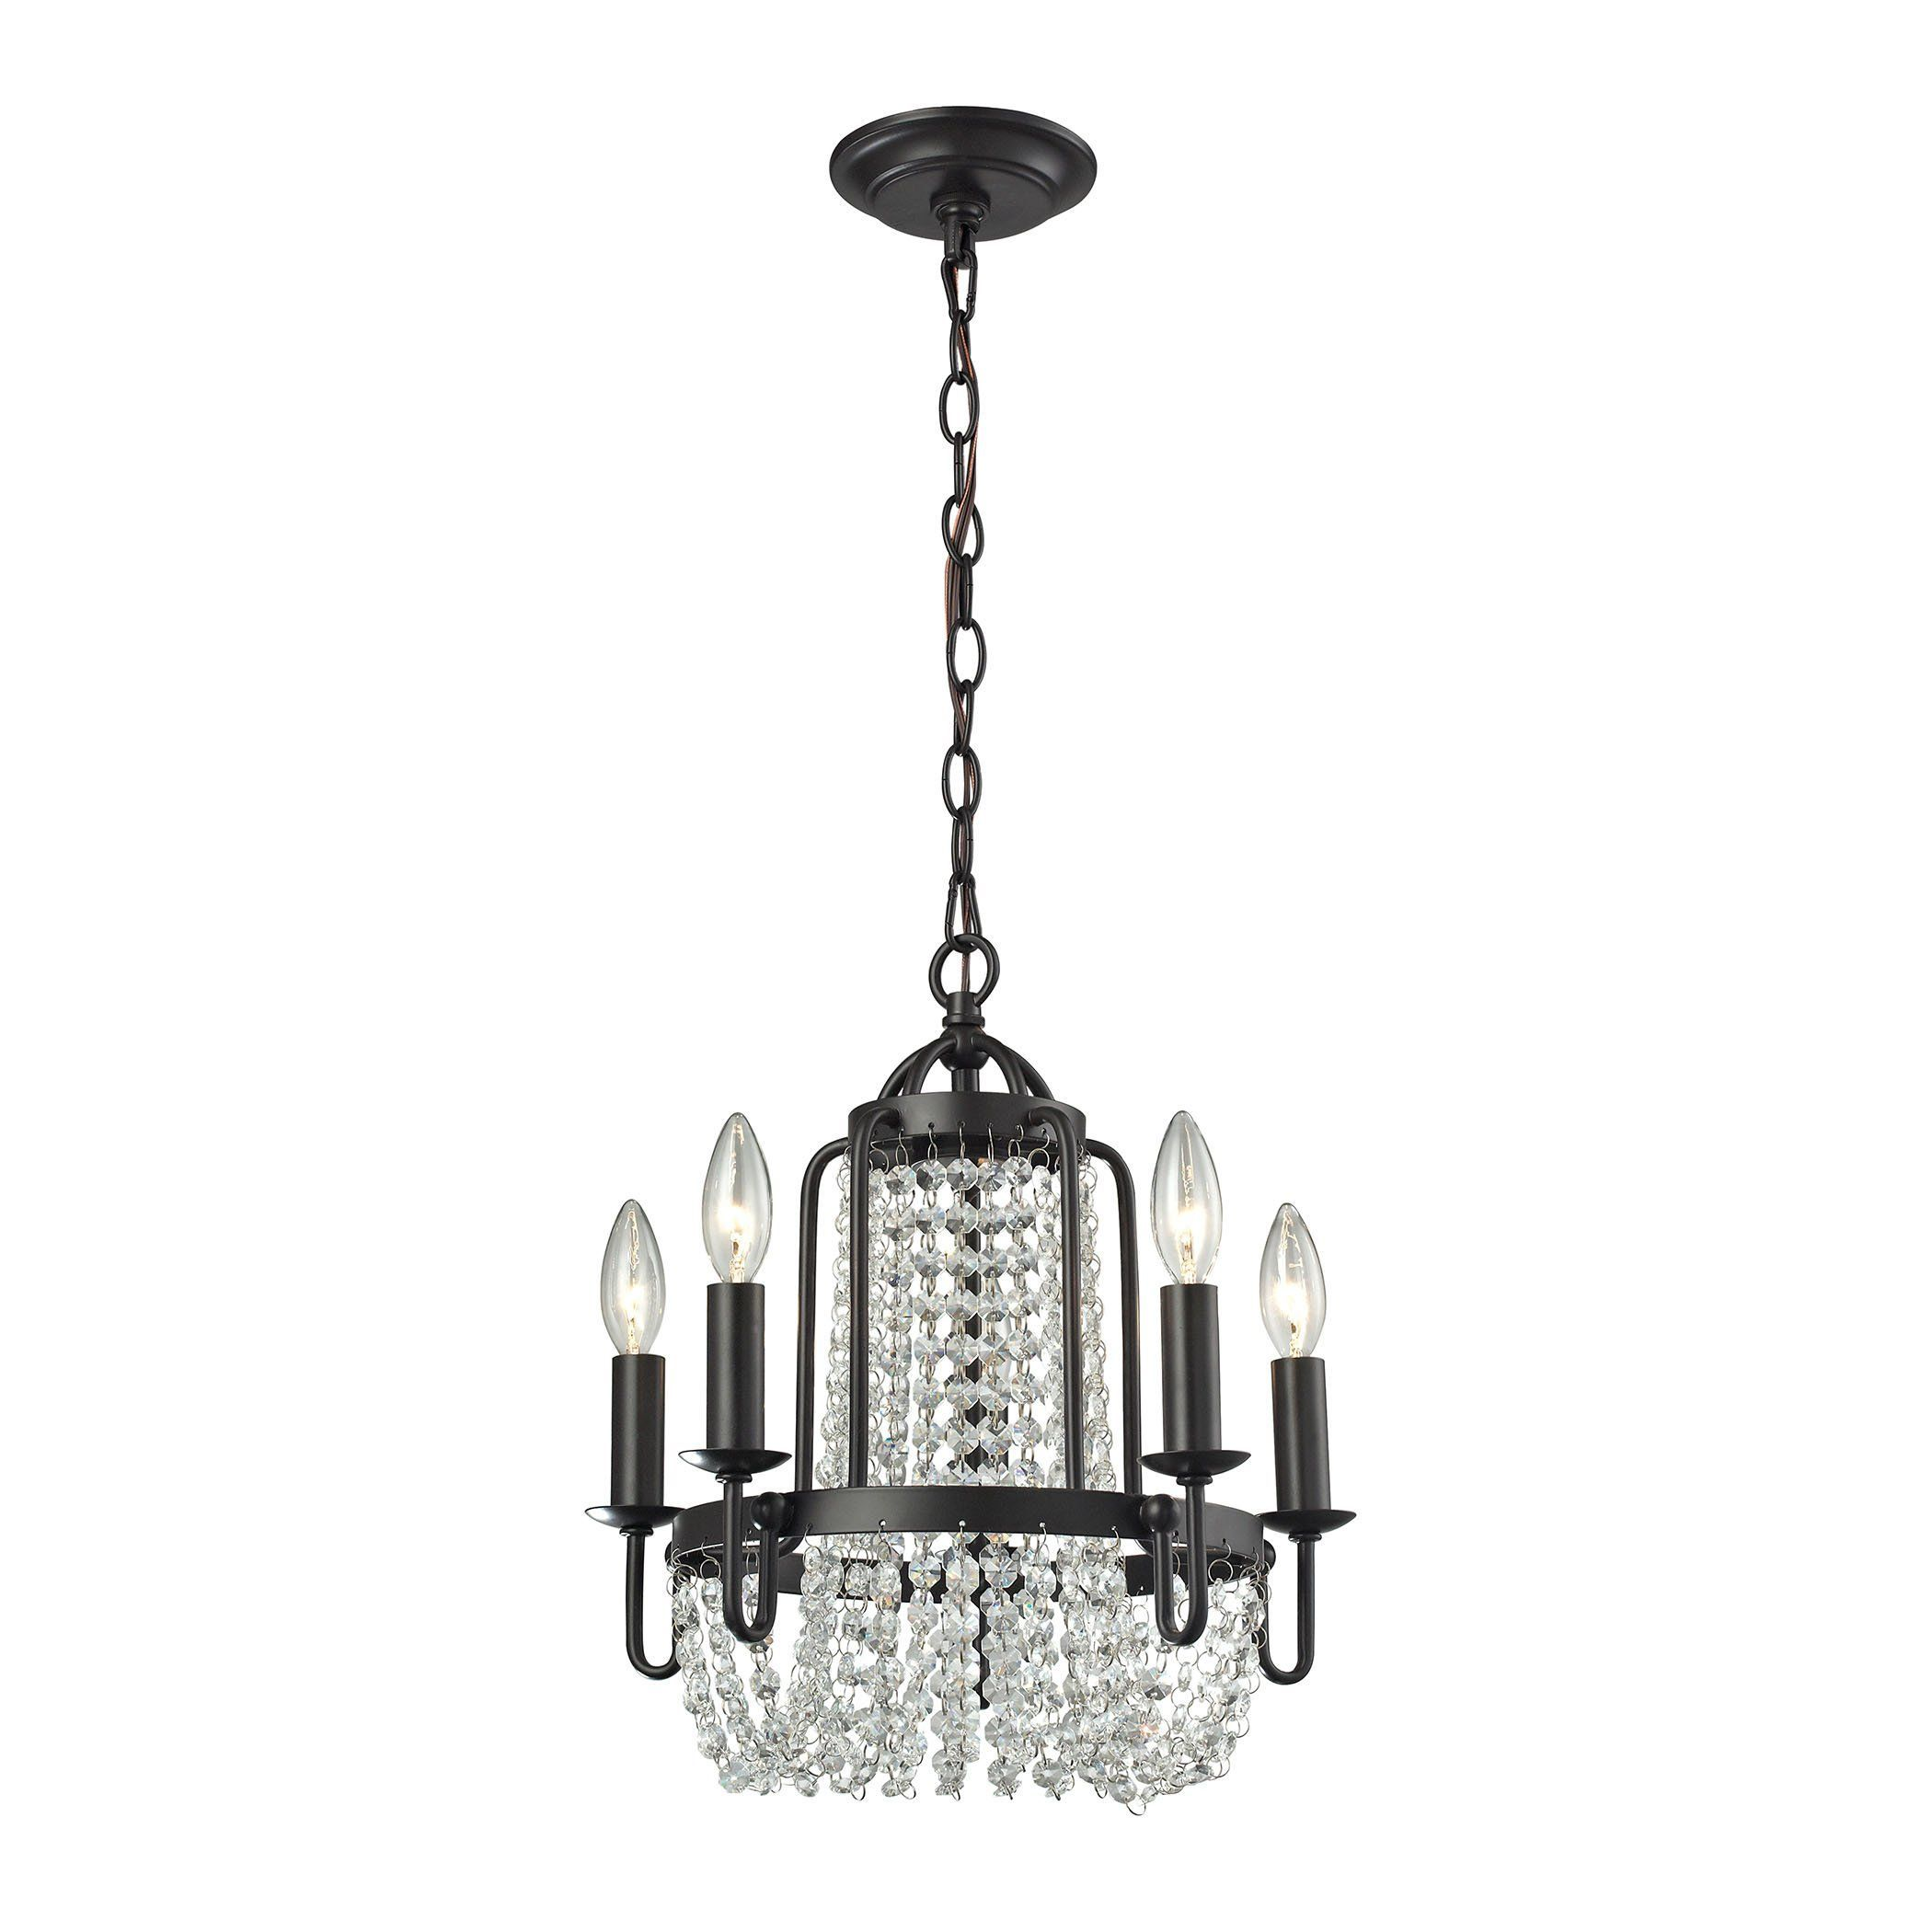 Chandette light chandelier in oil rubbed bronze products